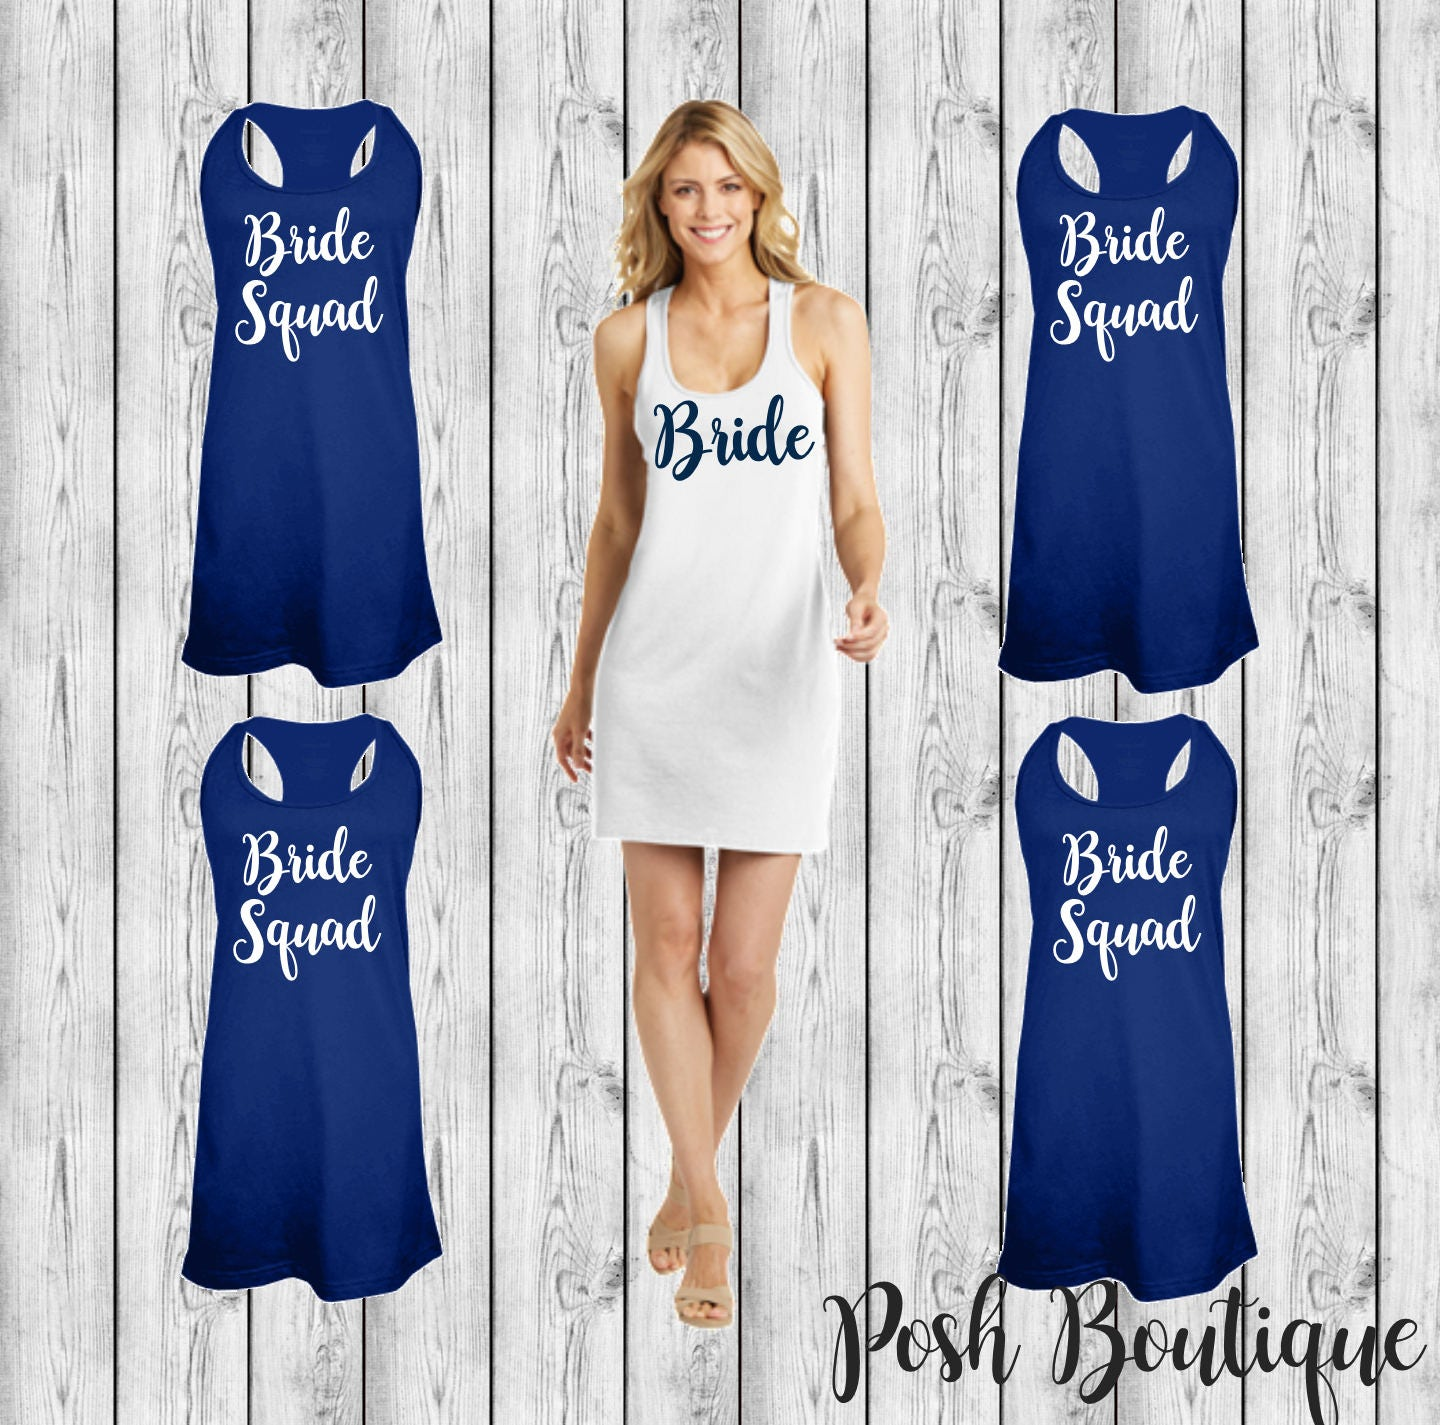 0df1f676cec02 Bride Swimsuit Coverup, Bridesmaid Swim Cover Ups, Monogrammed Beach Coverup,  Tank dress, Bridesmaid Gifts, Cruise, Wedding, Bachelorette. gallery photo  ...